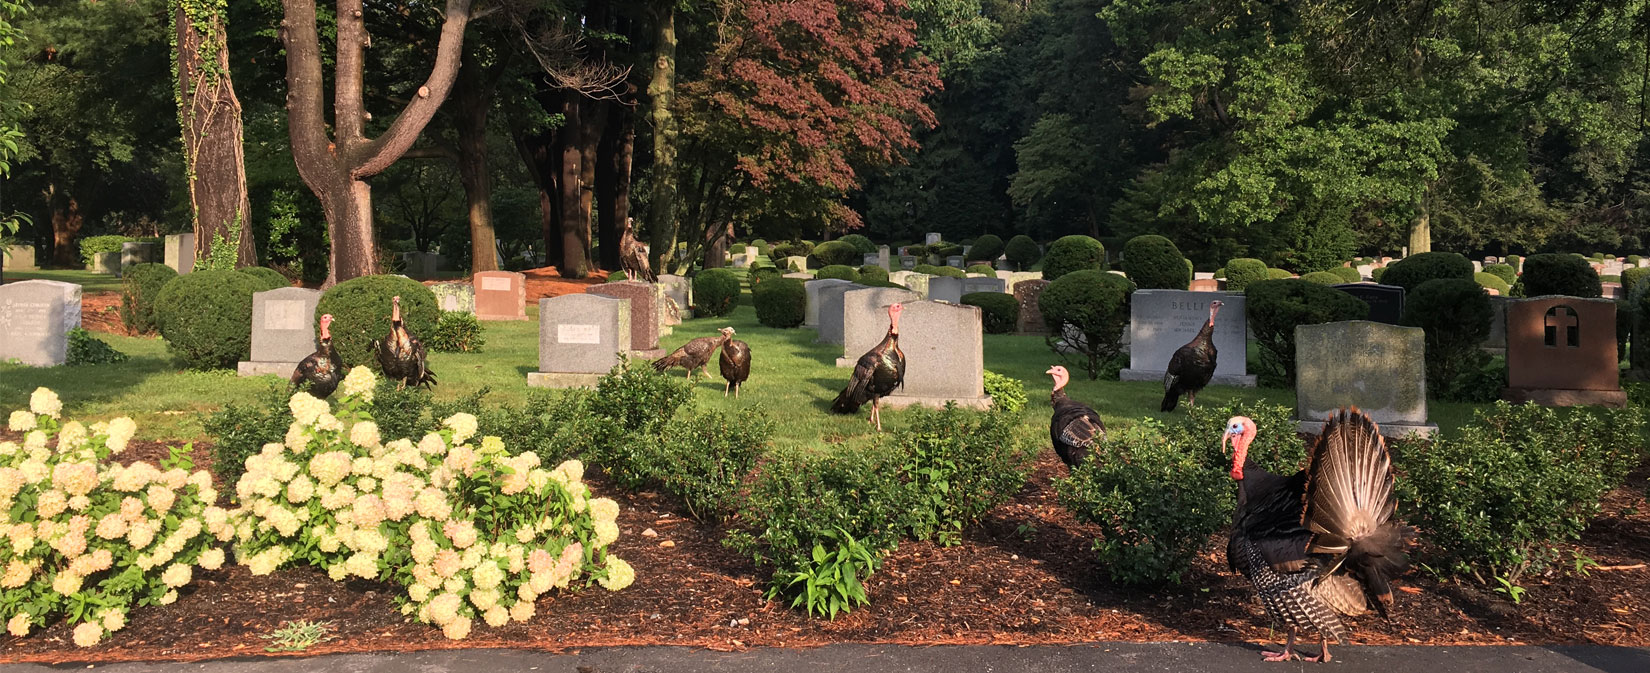 Turkeys in Newton Cemetery Parking Lot